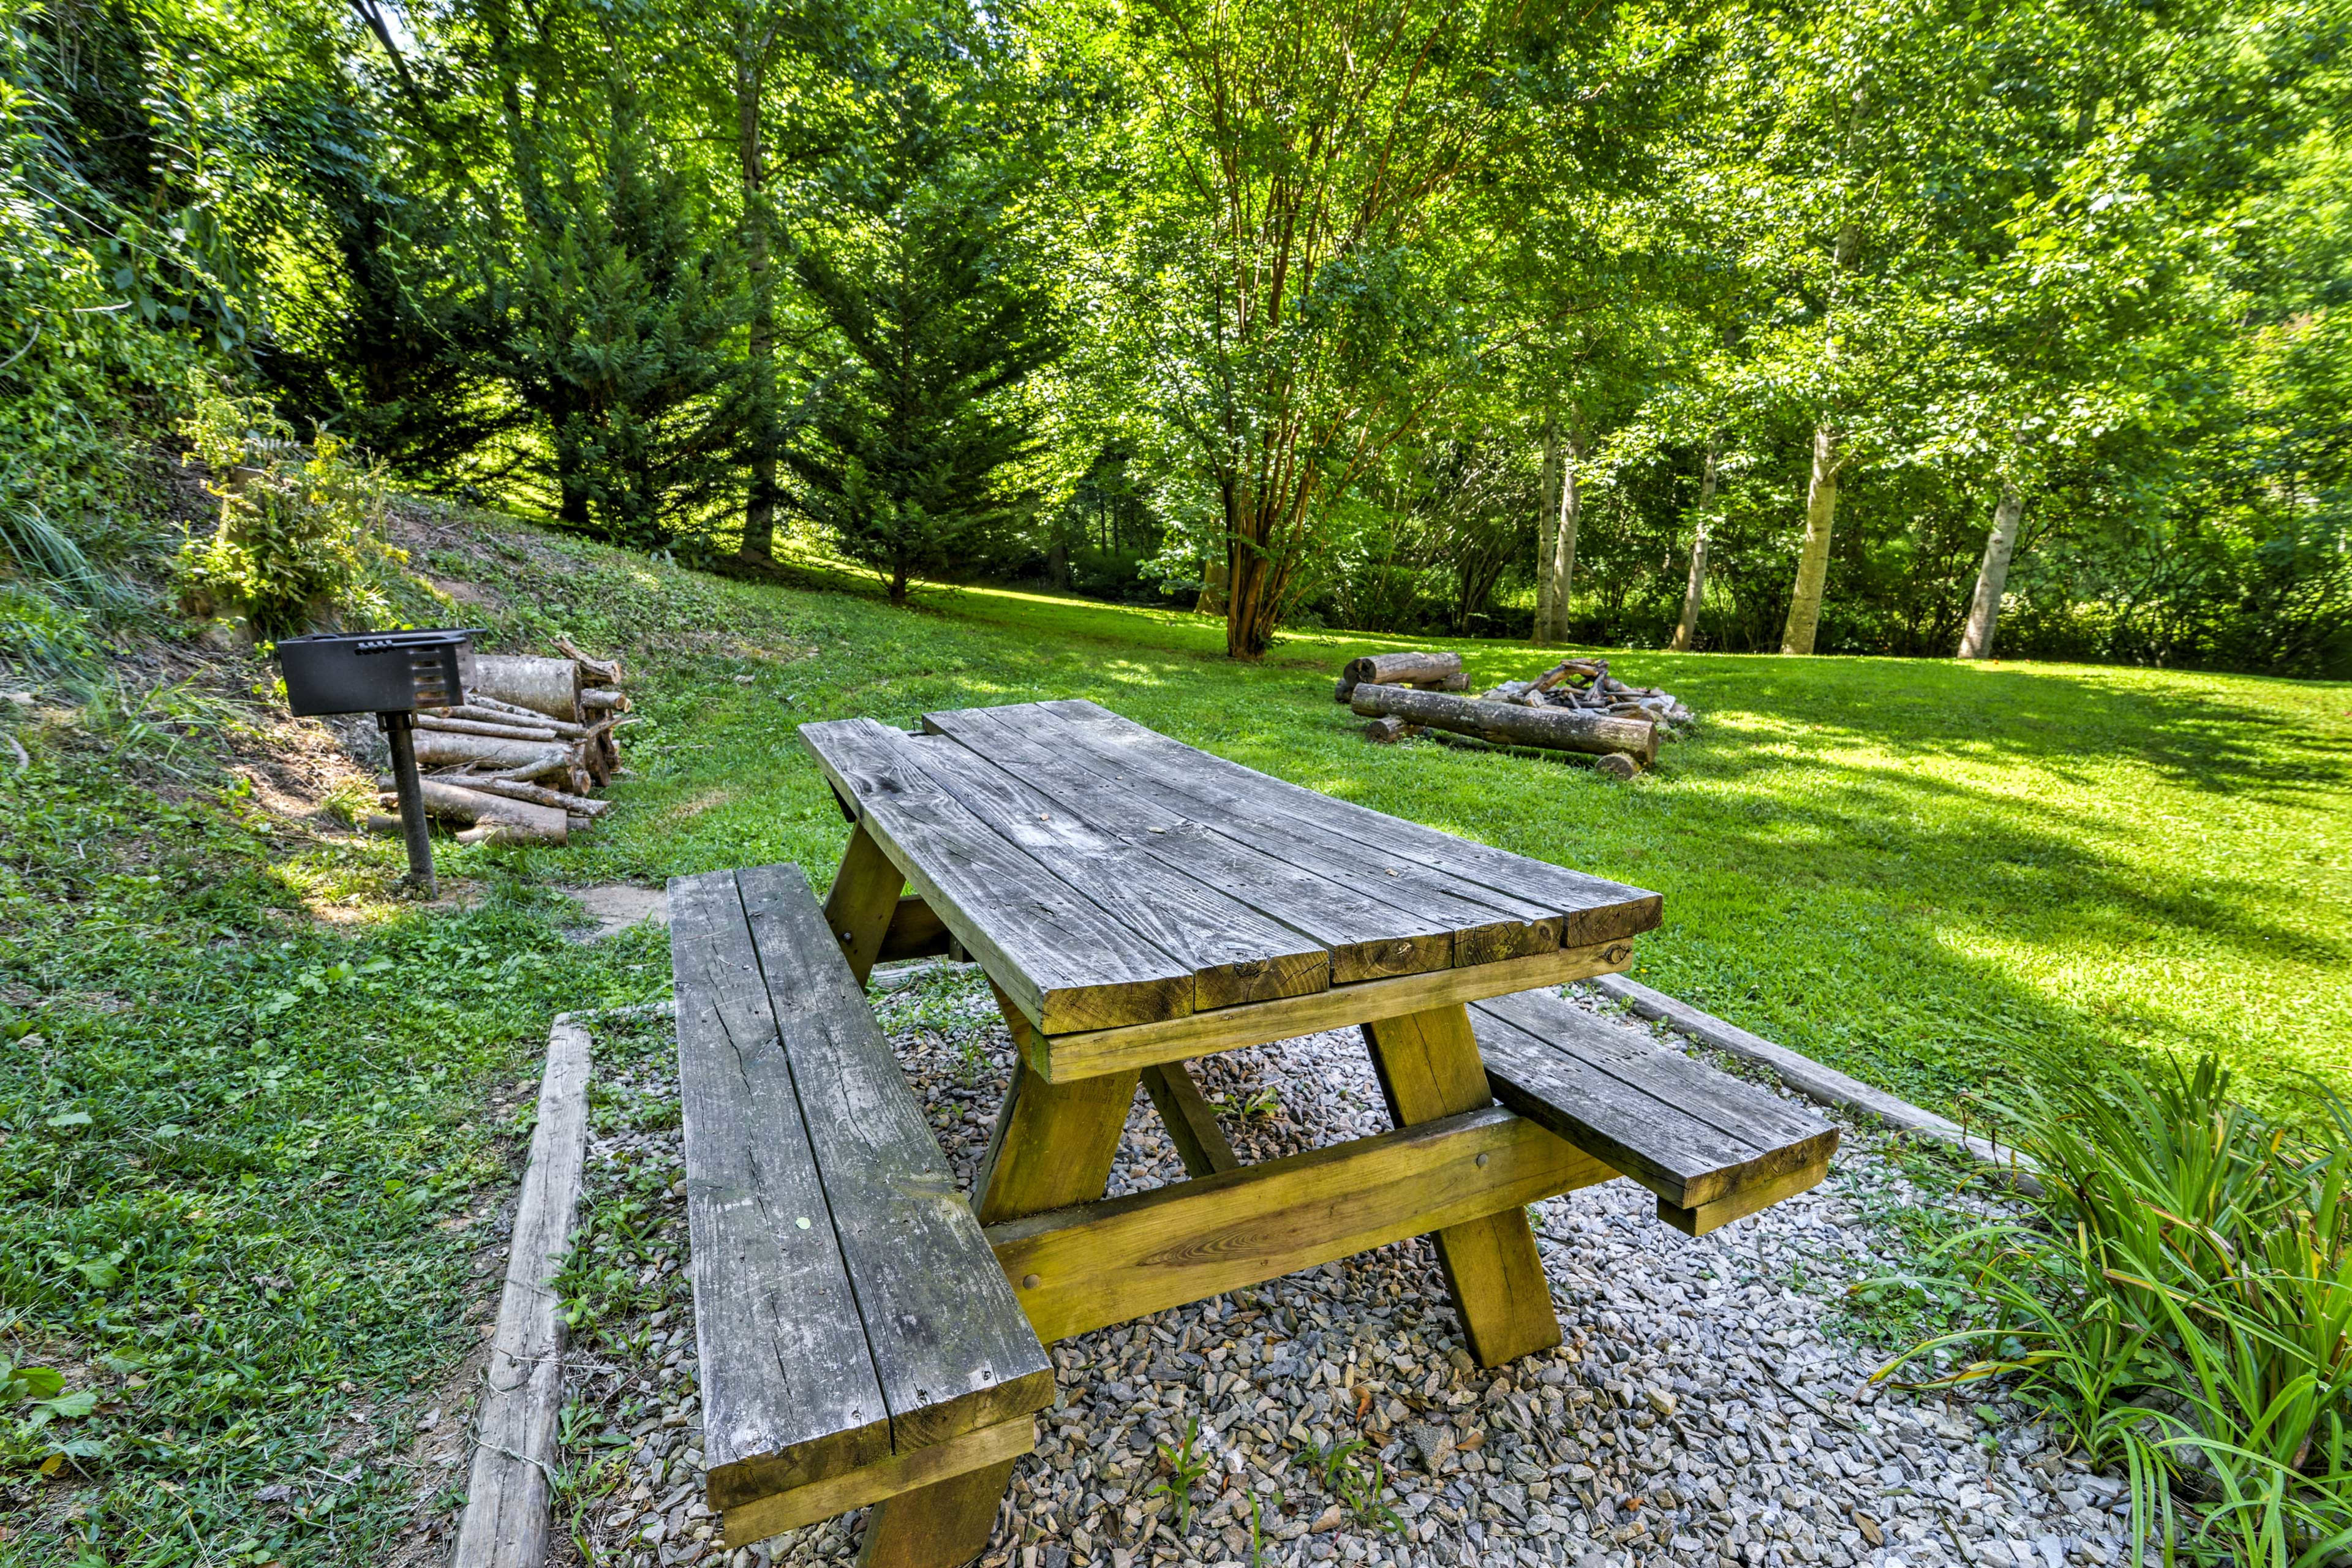 Gather around the picnic table to enjoy a meal with a view!